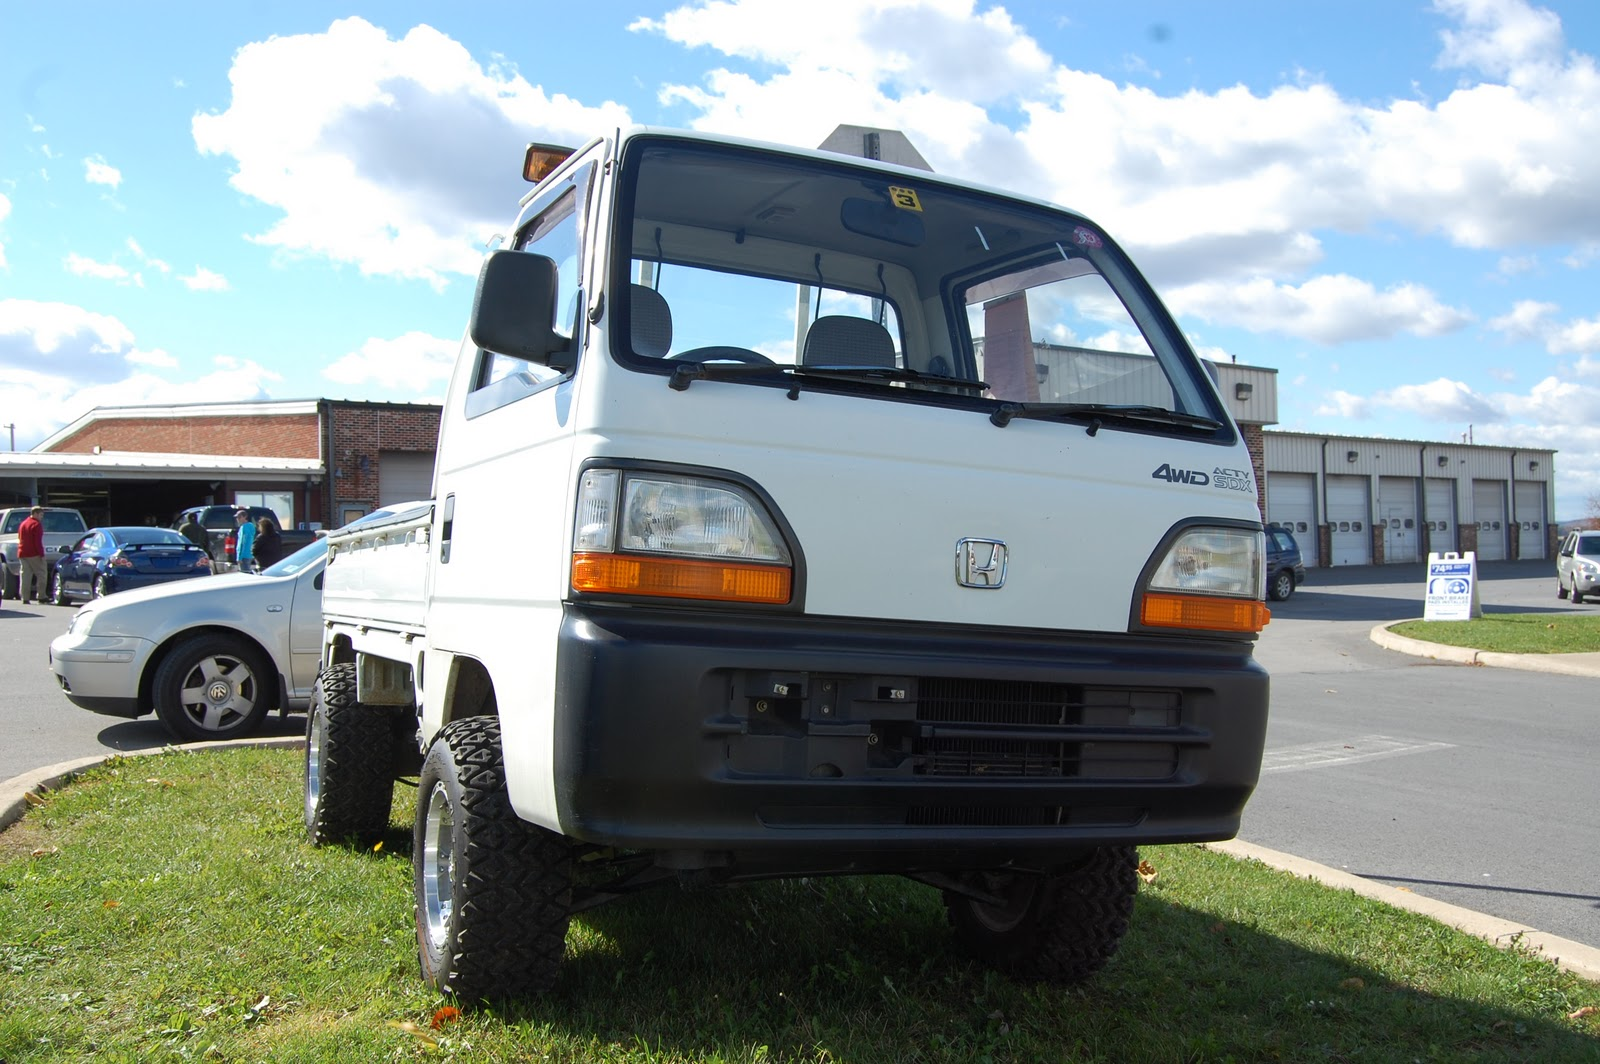 You Don't See These Too Often: Honda Acty